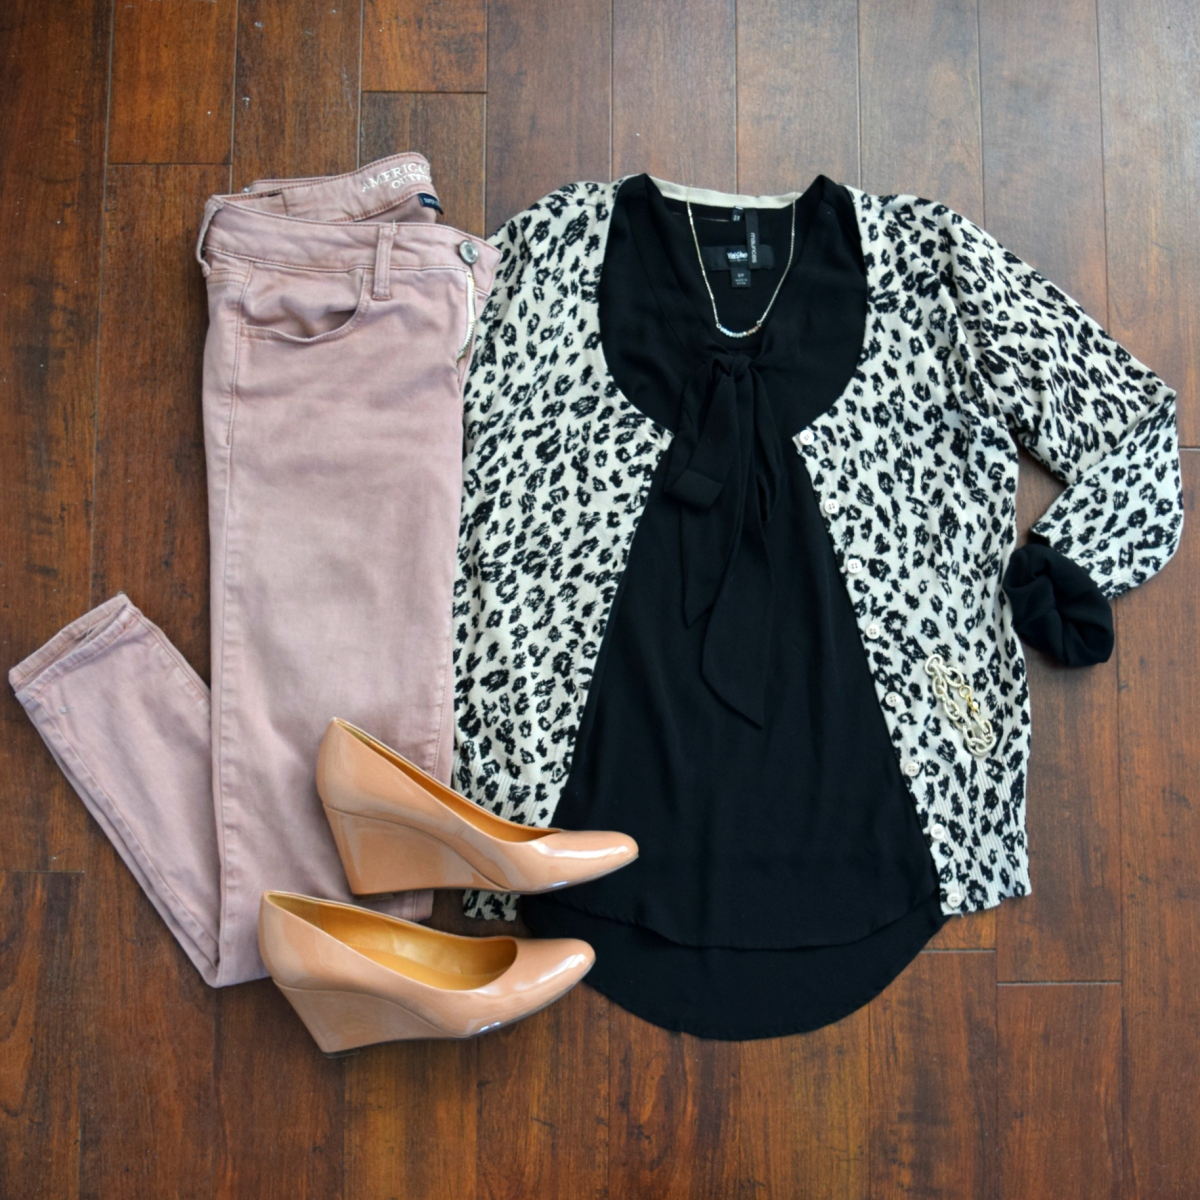 Leopard cardigan, a sheer black blouse, and pink sateen skinny jeans